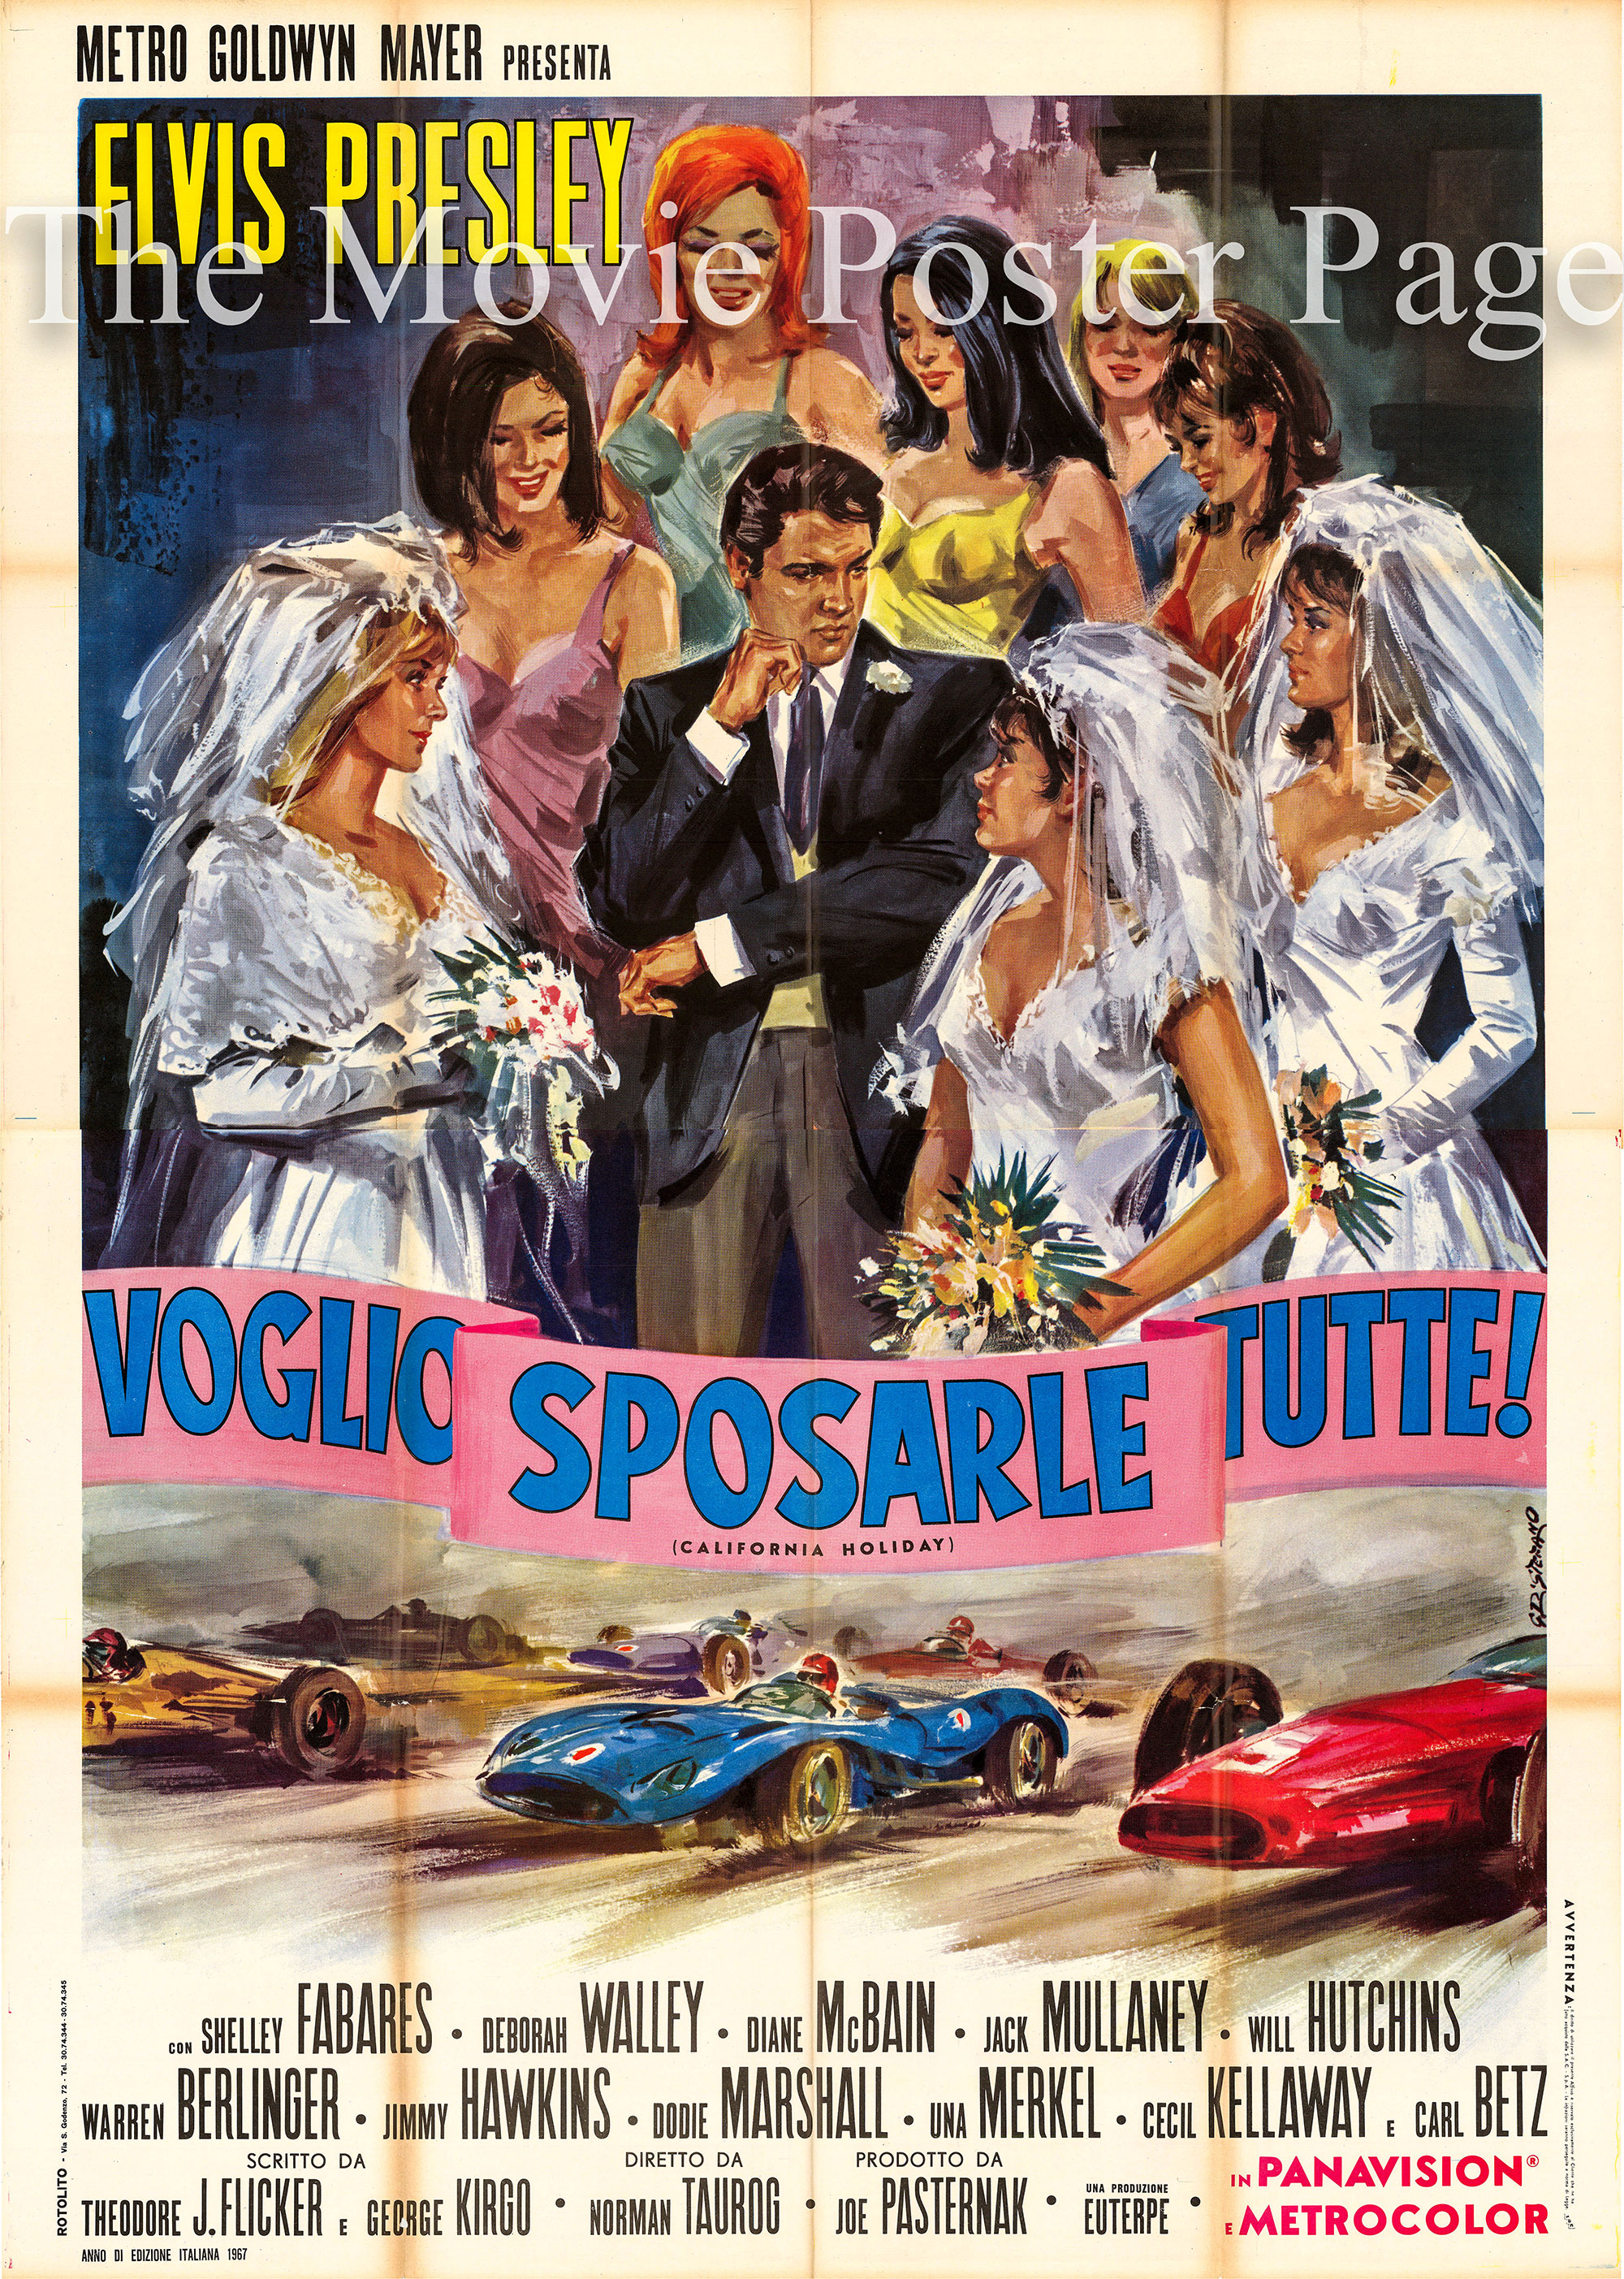 This is a picture of a 55x77 Italian promotional four-sheet poster for the 1966 Norman Taurog film <i>Spinout</i> starring Elvis Presley.